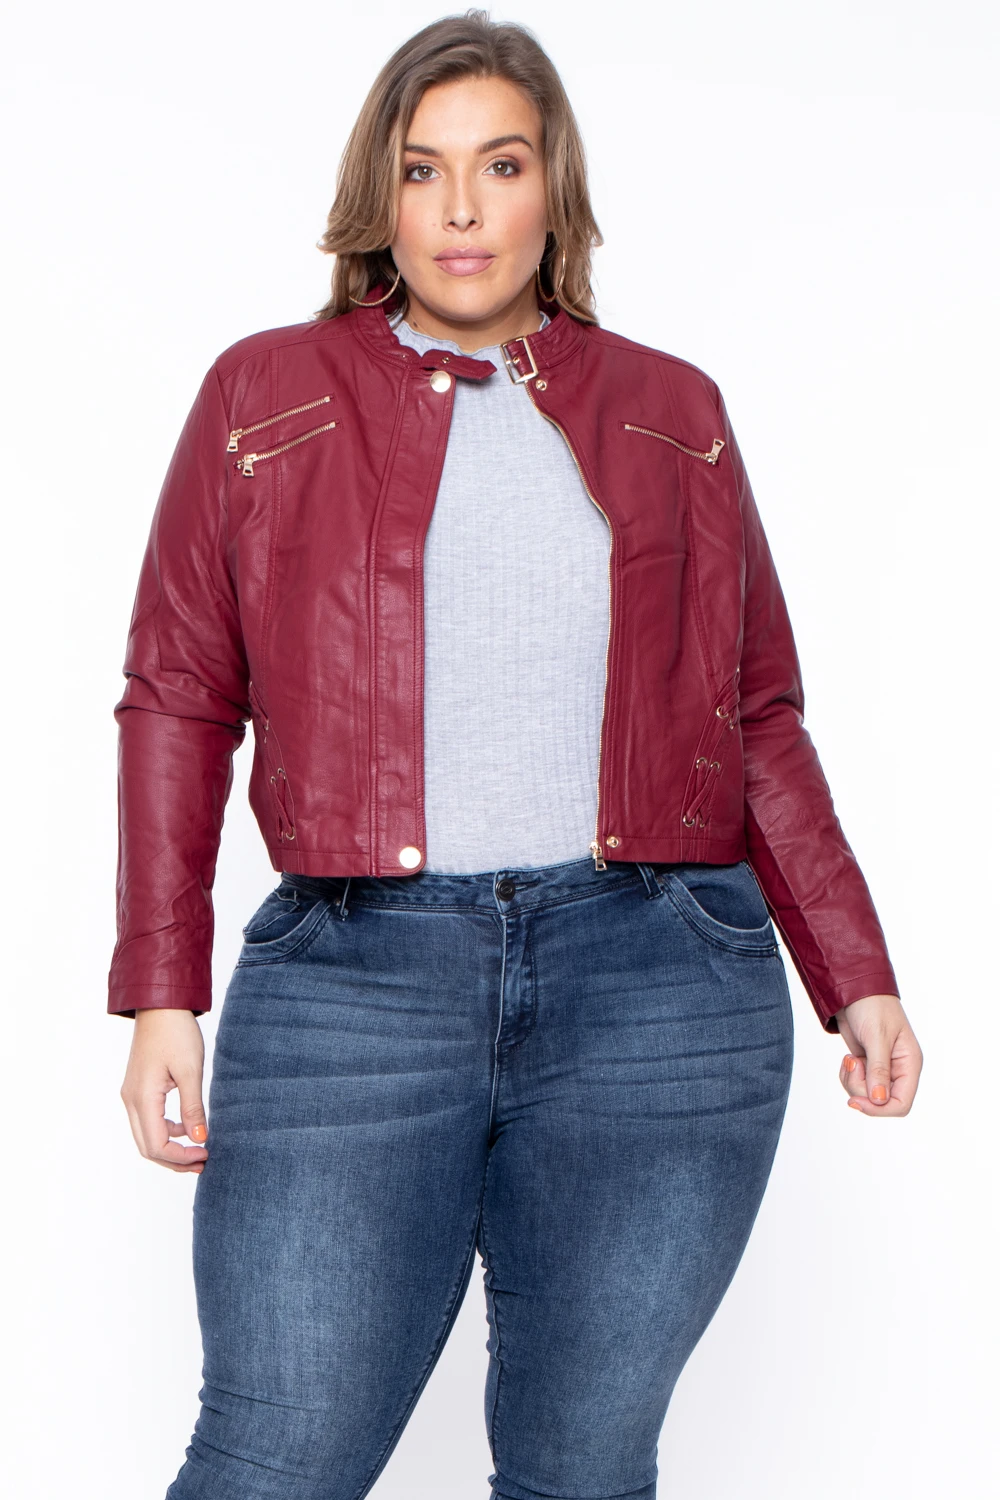 Plus Size Faux Leather Bad Girl Jacket Burgundy Curvy